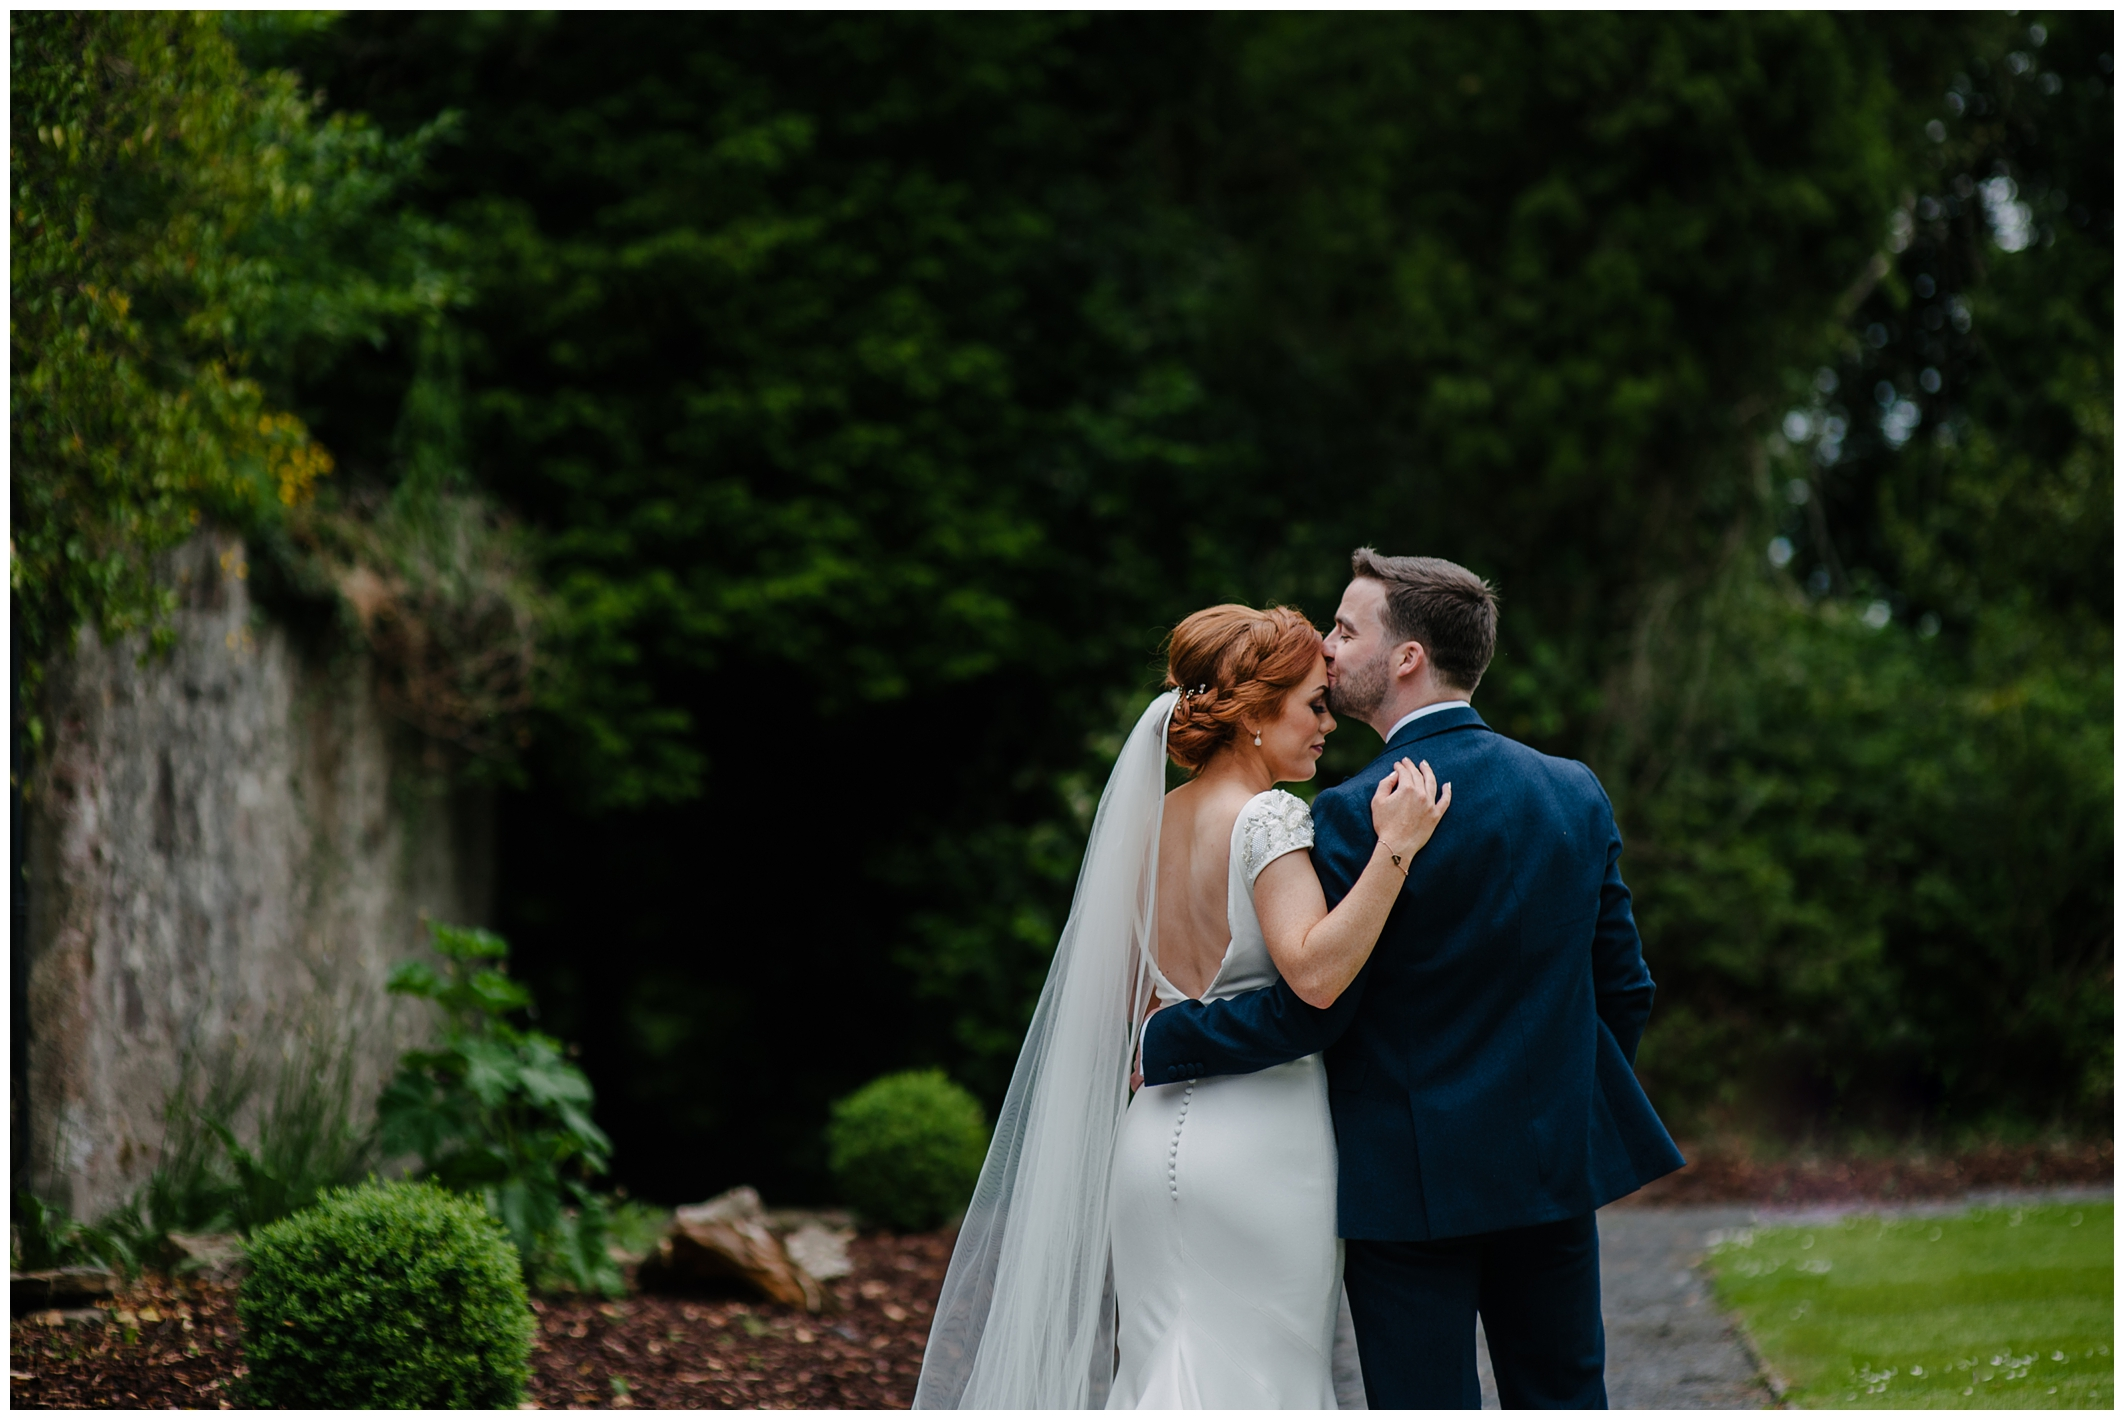 sinead_emmet_farnham_estate_wedding_jude_browne_photography_0115.jpg